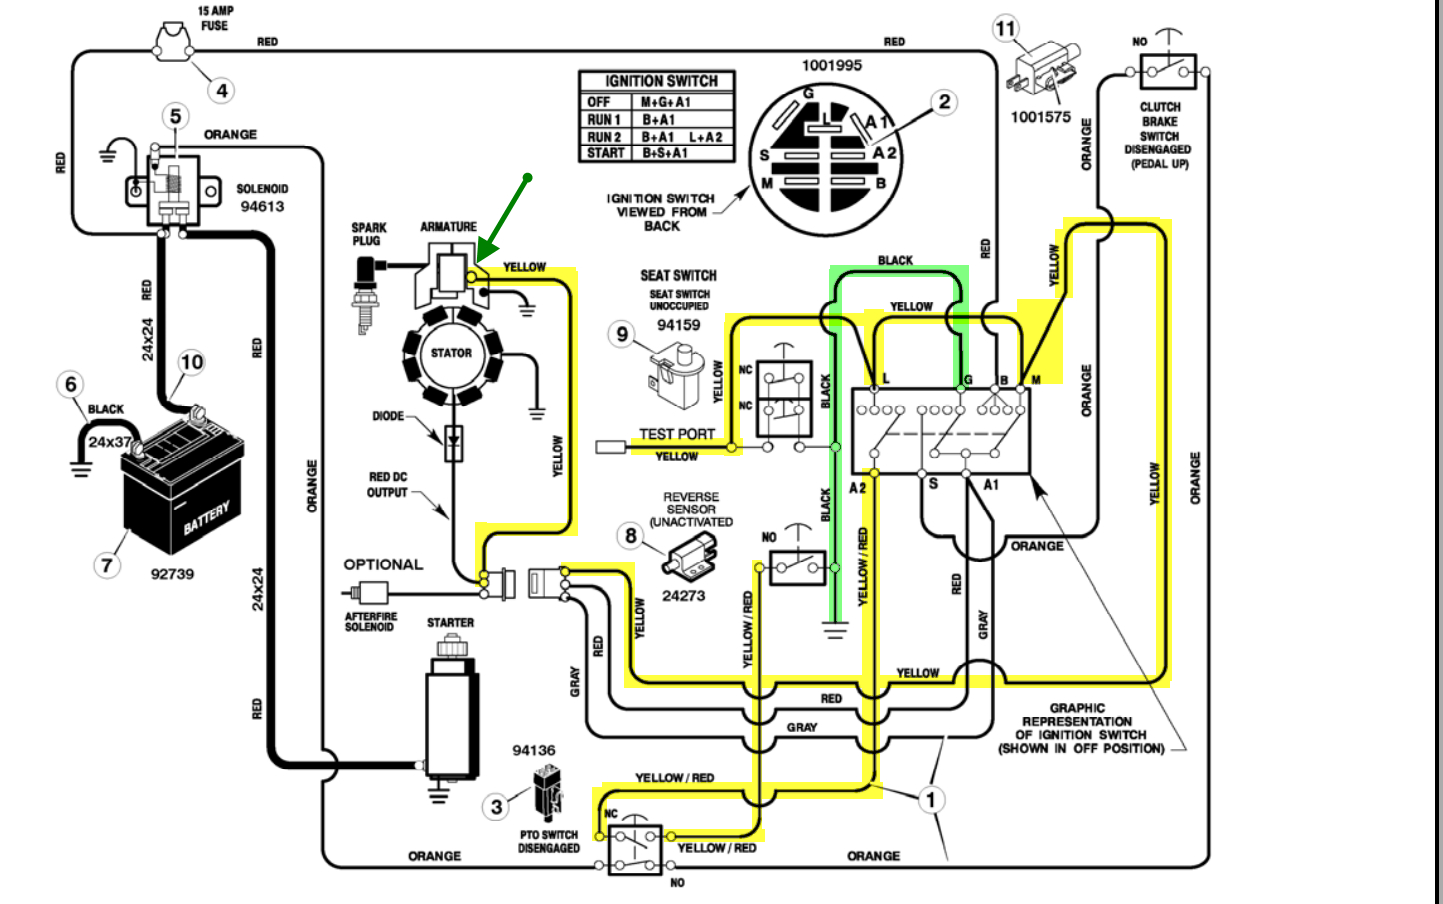 Mtv Lawn Tractor Wiring Diagram - Data Wiring Diagram Site - Wheel Horse Ignition Switch Wiring Diagram